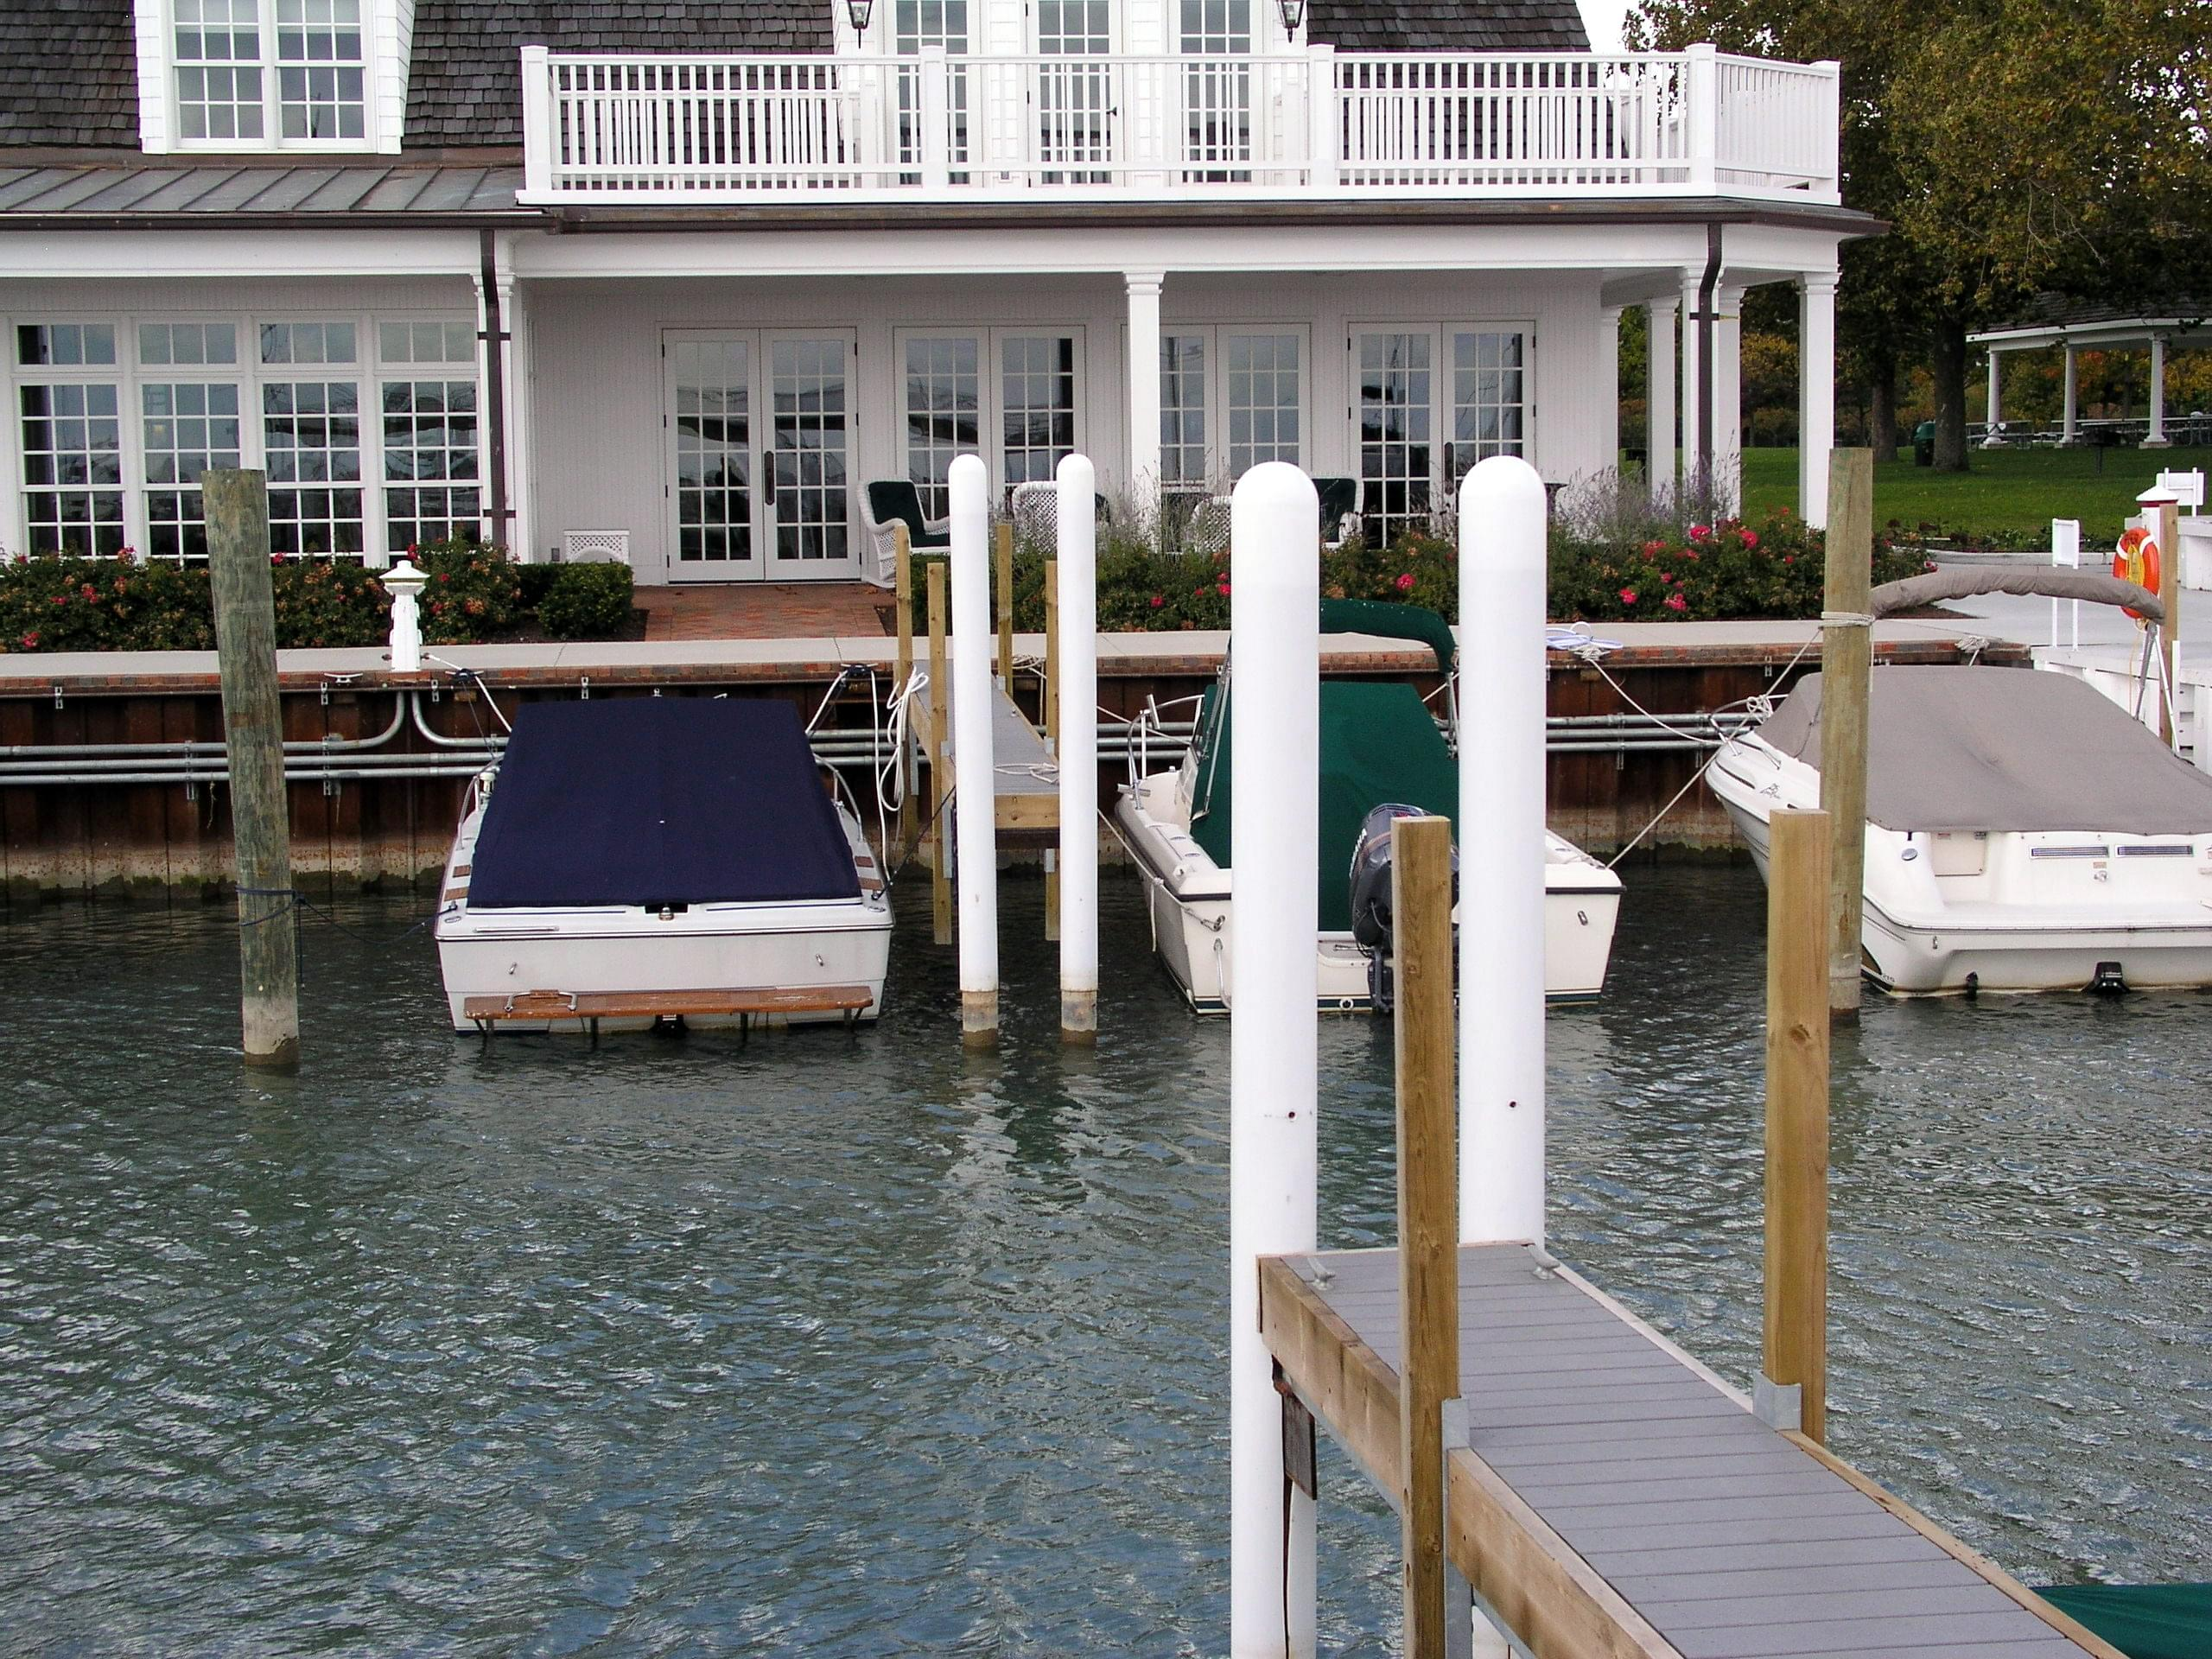 Ideal Shield's white bollard covers used for marina boat dock protection